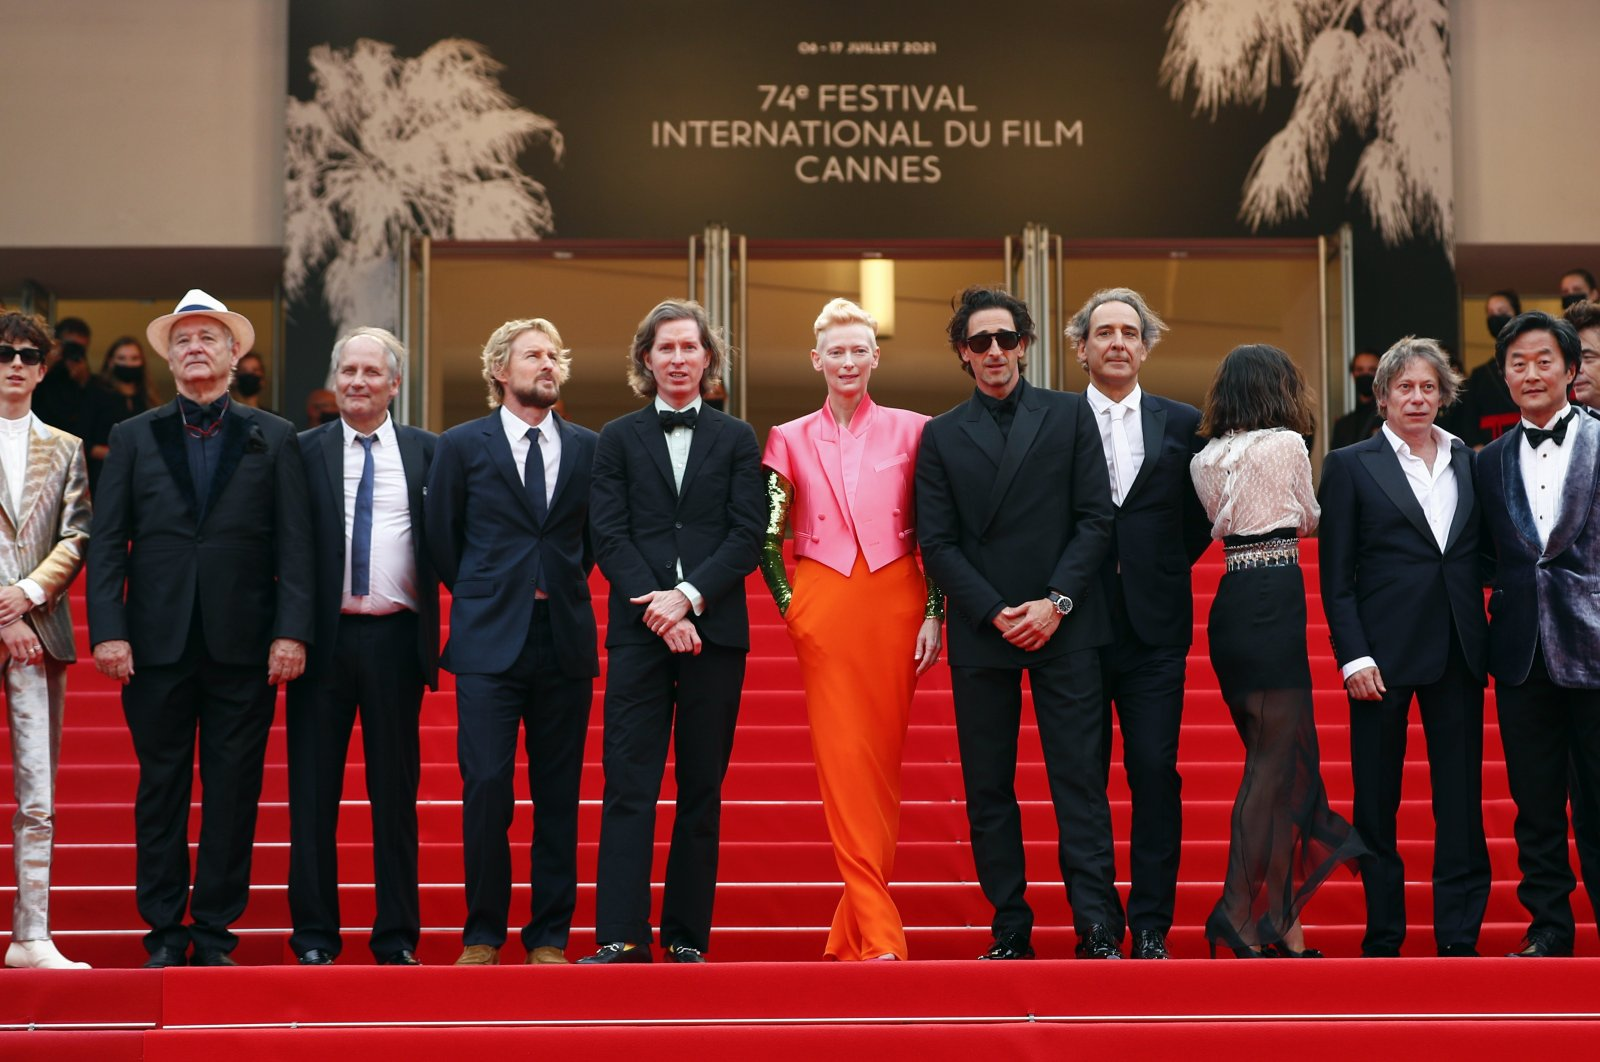 """Fromthe leftTimothee Chalamet, Bill Murray, Hippolyte Girardot,Owen Wilson, Wes Anderson,Tilda Swinton, Adrien Brody,Alexandre Desplat, Lyna Khoudri,Mathieu Amalric,Stephen Park, Benicio Del Toro,pose during a photocall for the film""""The French Dispatch,"""" at the 74th Cannes Film Festival inCannes, France, July 13, 2021. (Reuters Photo)"""